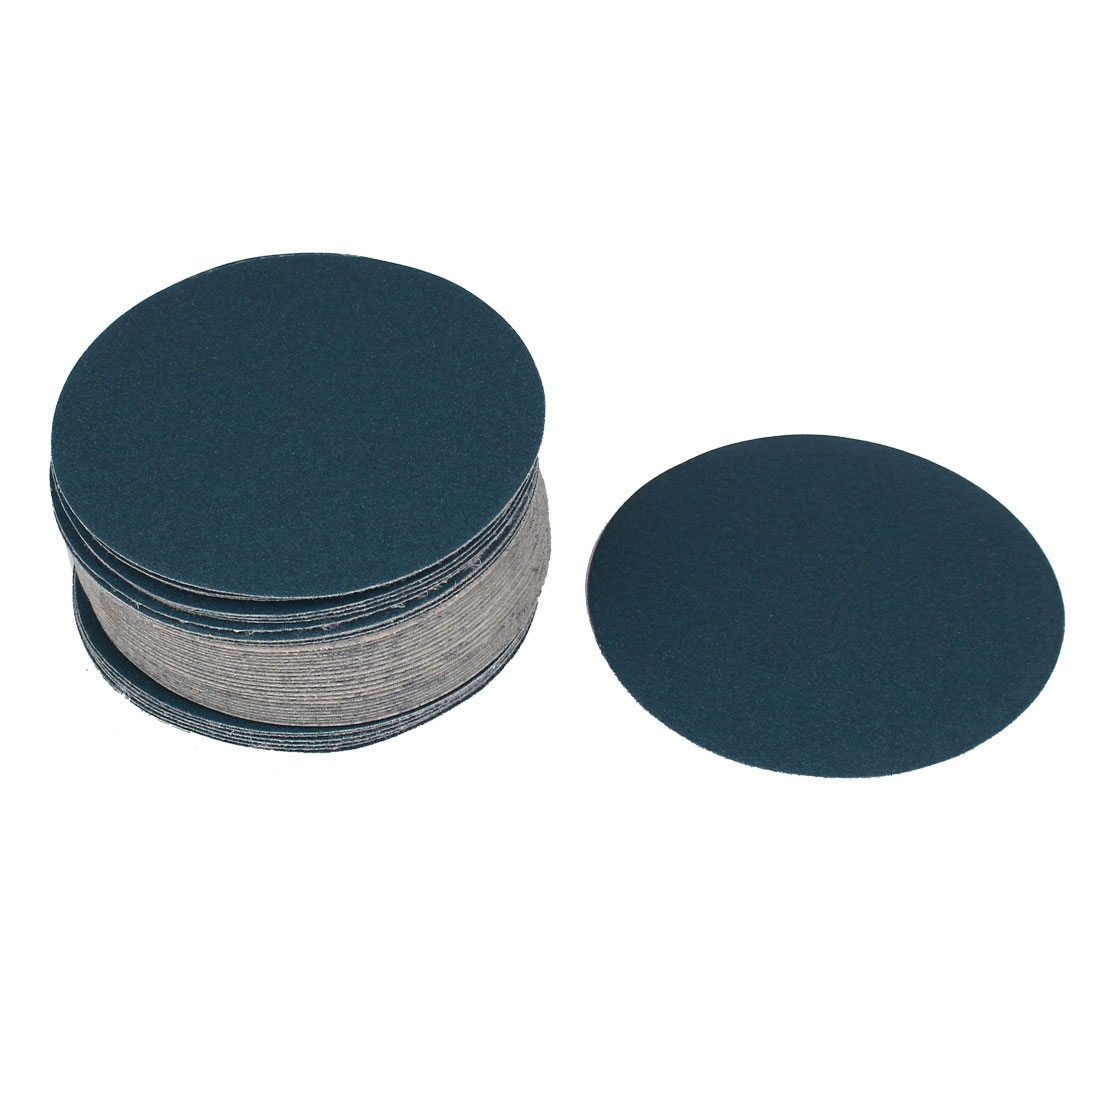 "5"" Sandpaper Auto Car Paint Polishing Sanding Disc Hook and Loop Fastener 180 Grit 50pcs"